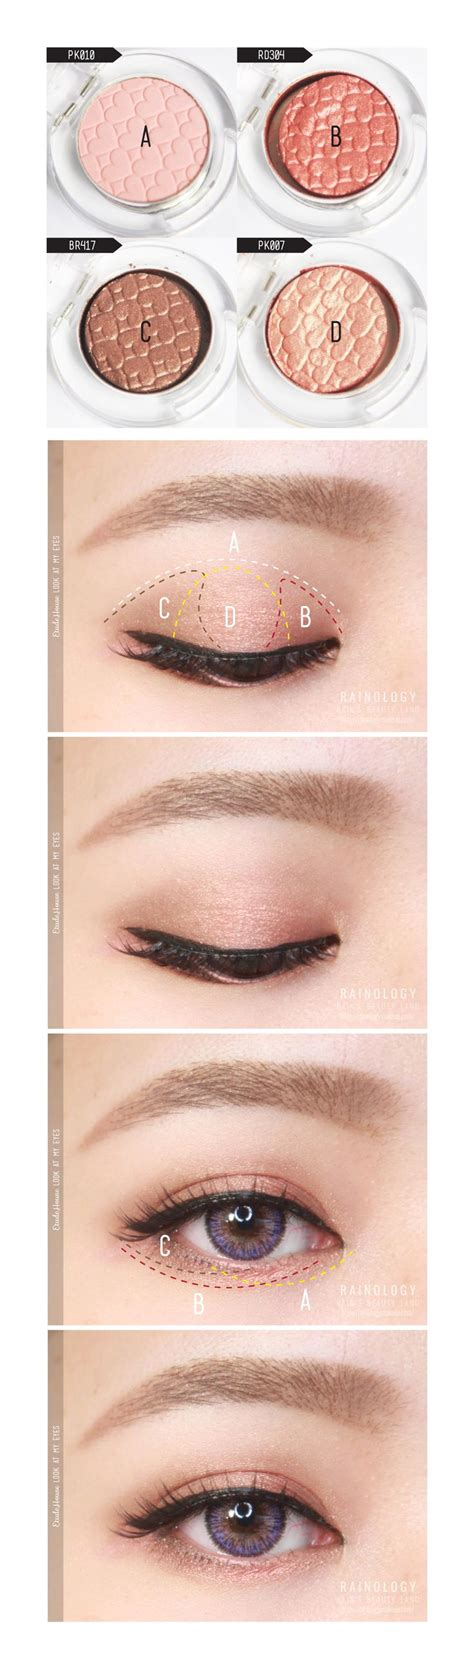 Make Up Etude House Indonesia best 25 etude house ideas on asian makeup